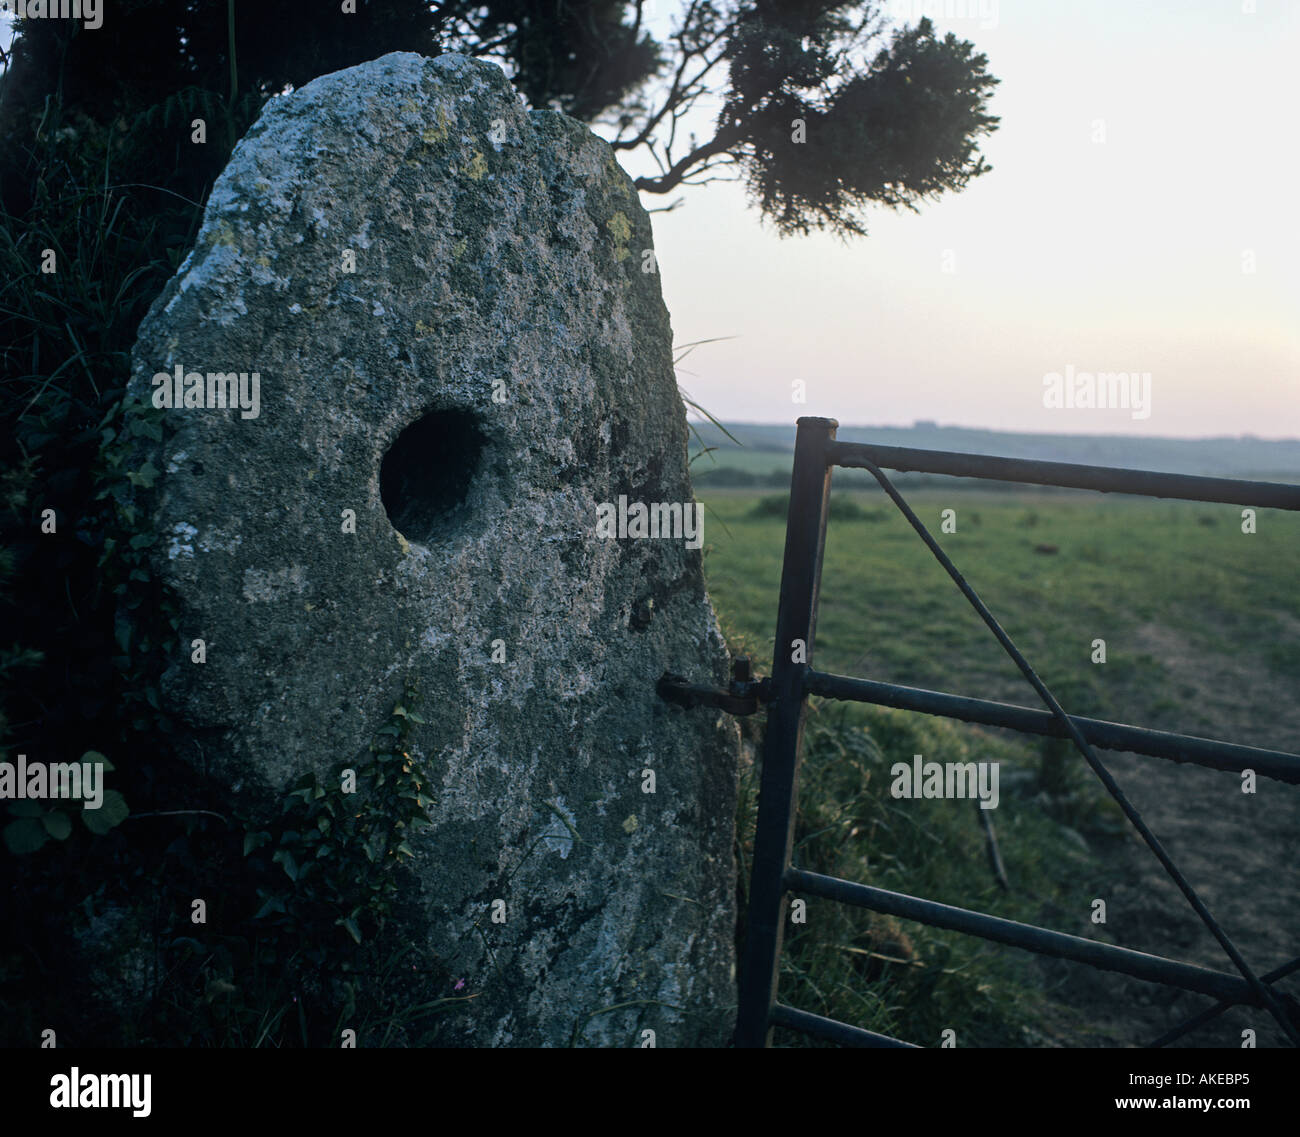 Ancient holed stone being used as a gatepost by the roadside in the village of Boleigh Cornwall - Stock Image